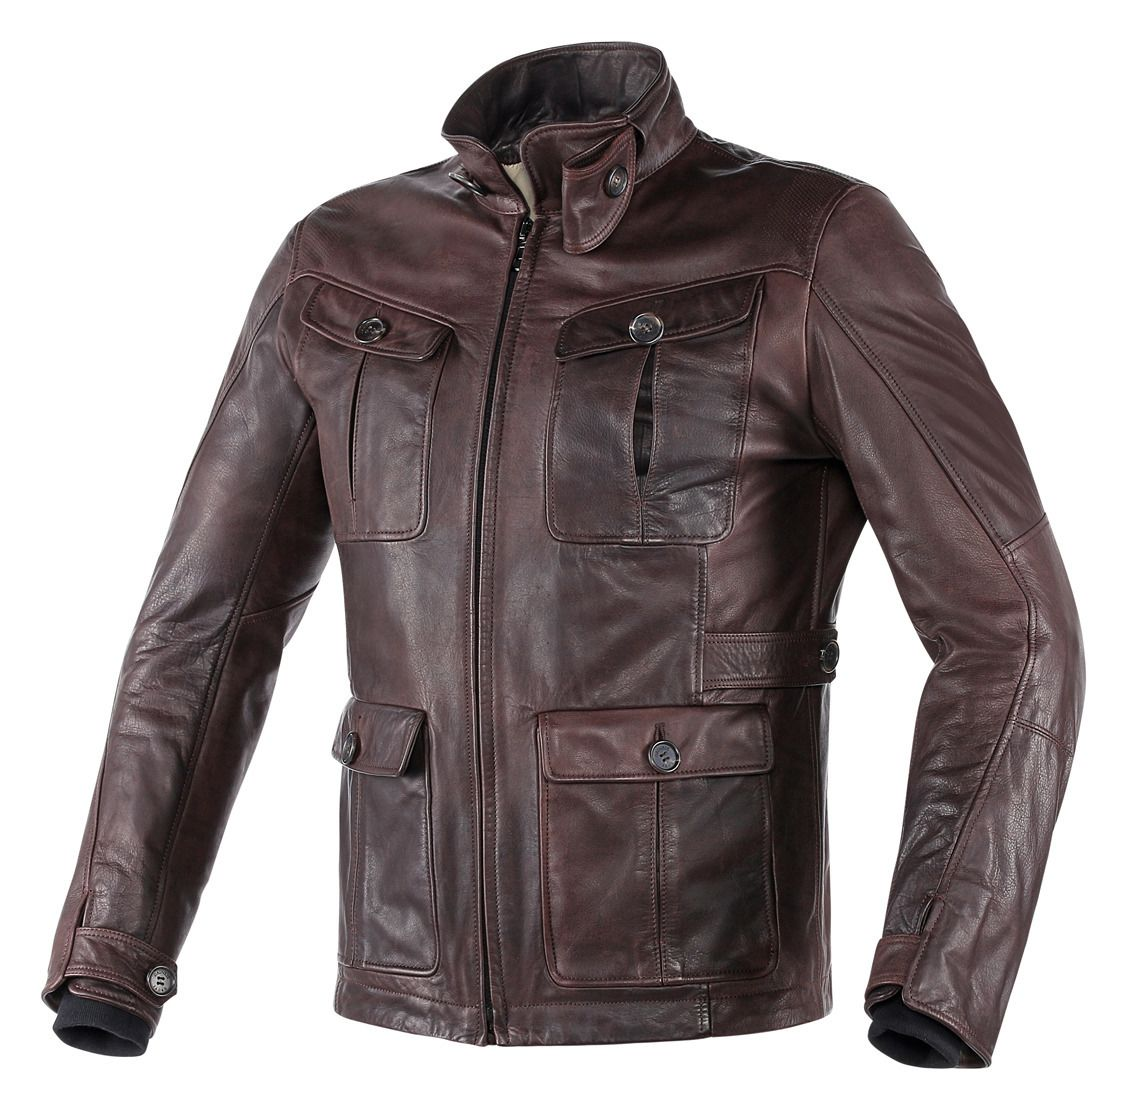 dainese harrison leather jacket 30 off. Black Bedroom Furniture Sets. Home Design Ideas